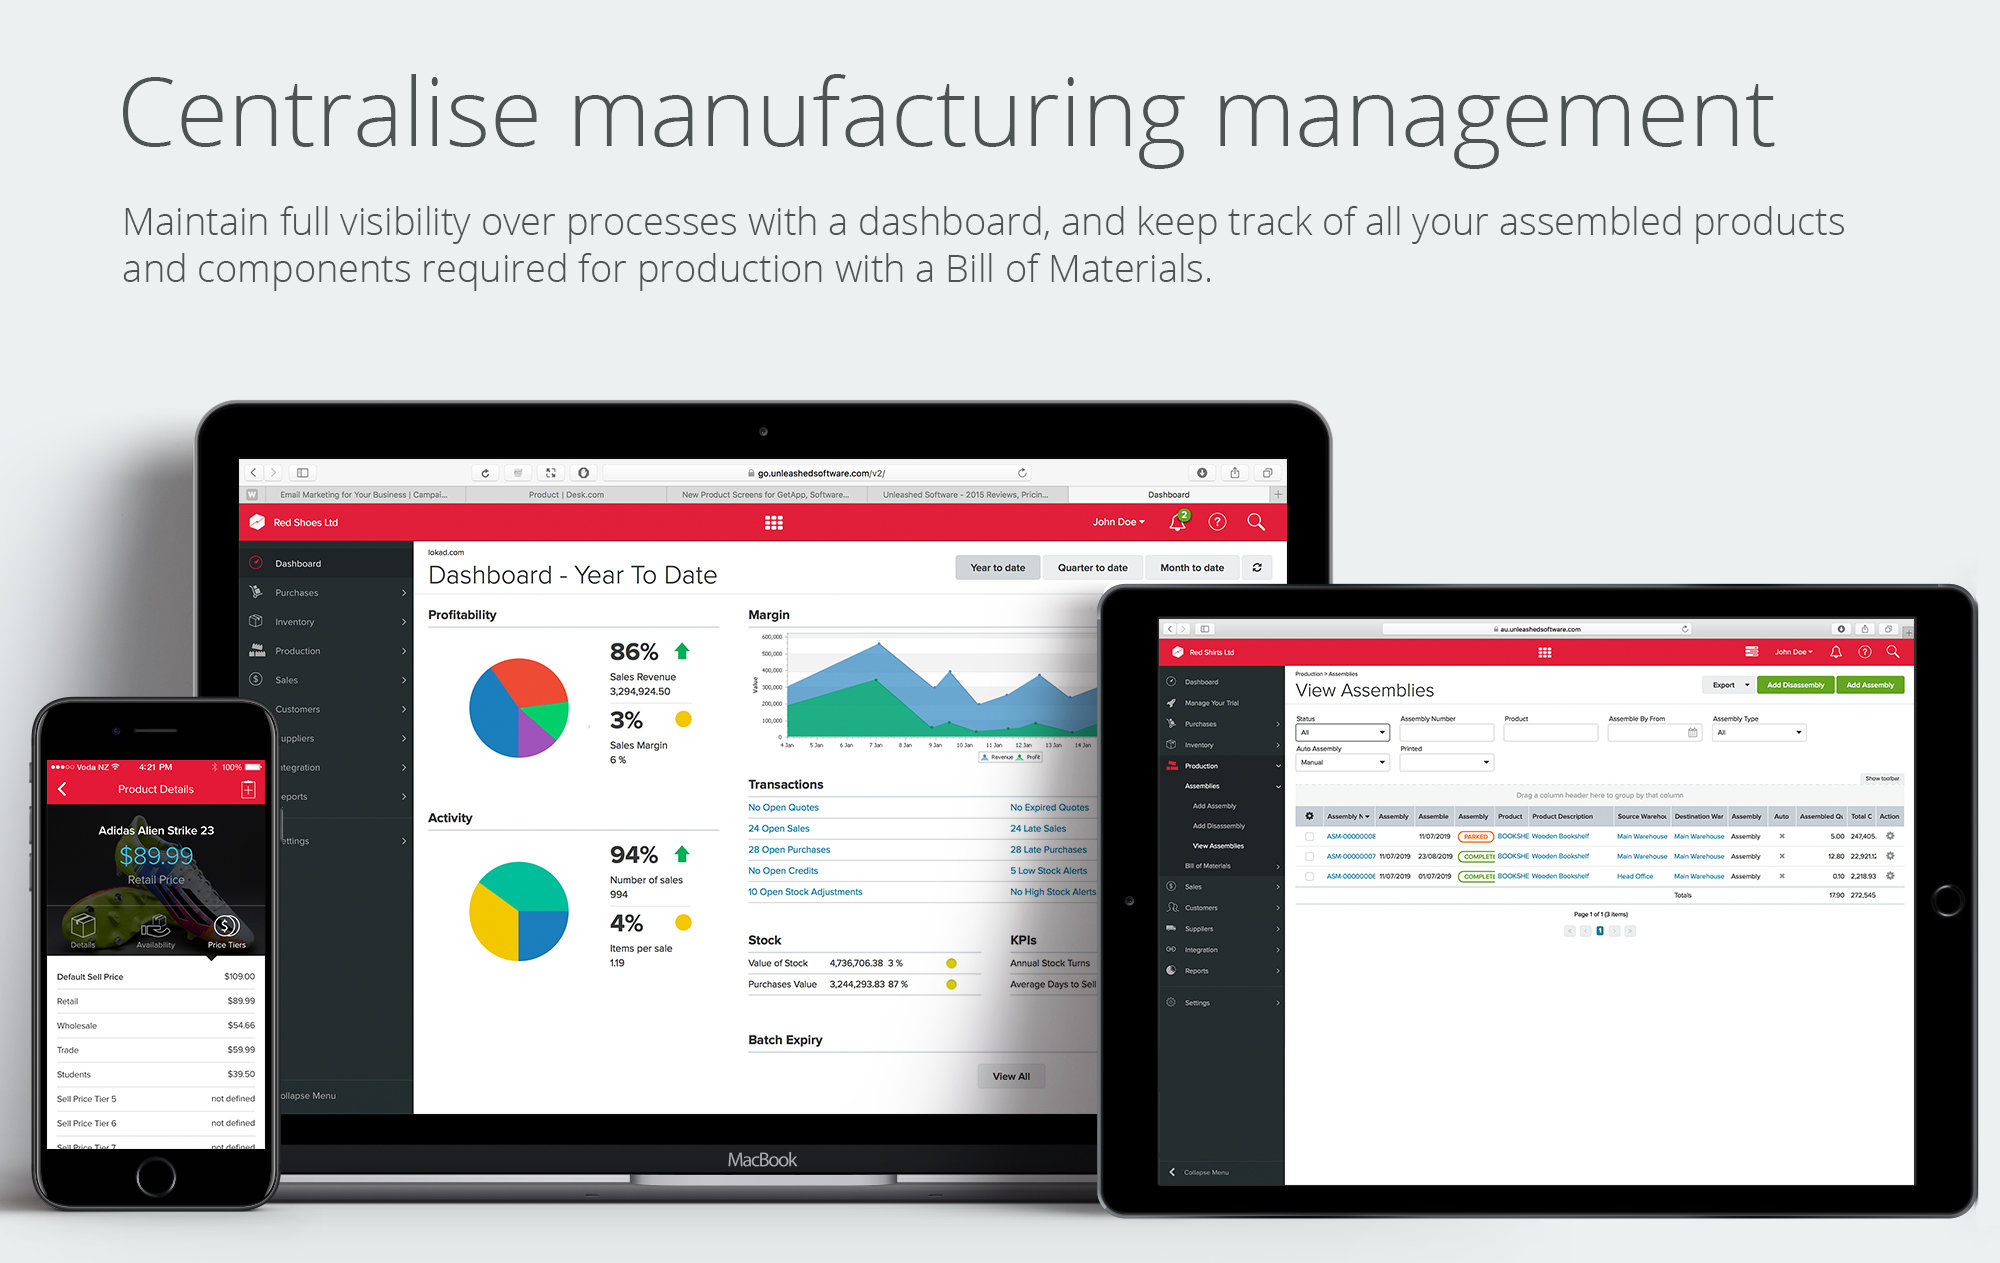 01 Centralise manufacturing management